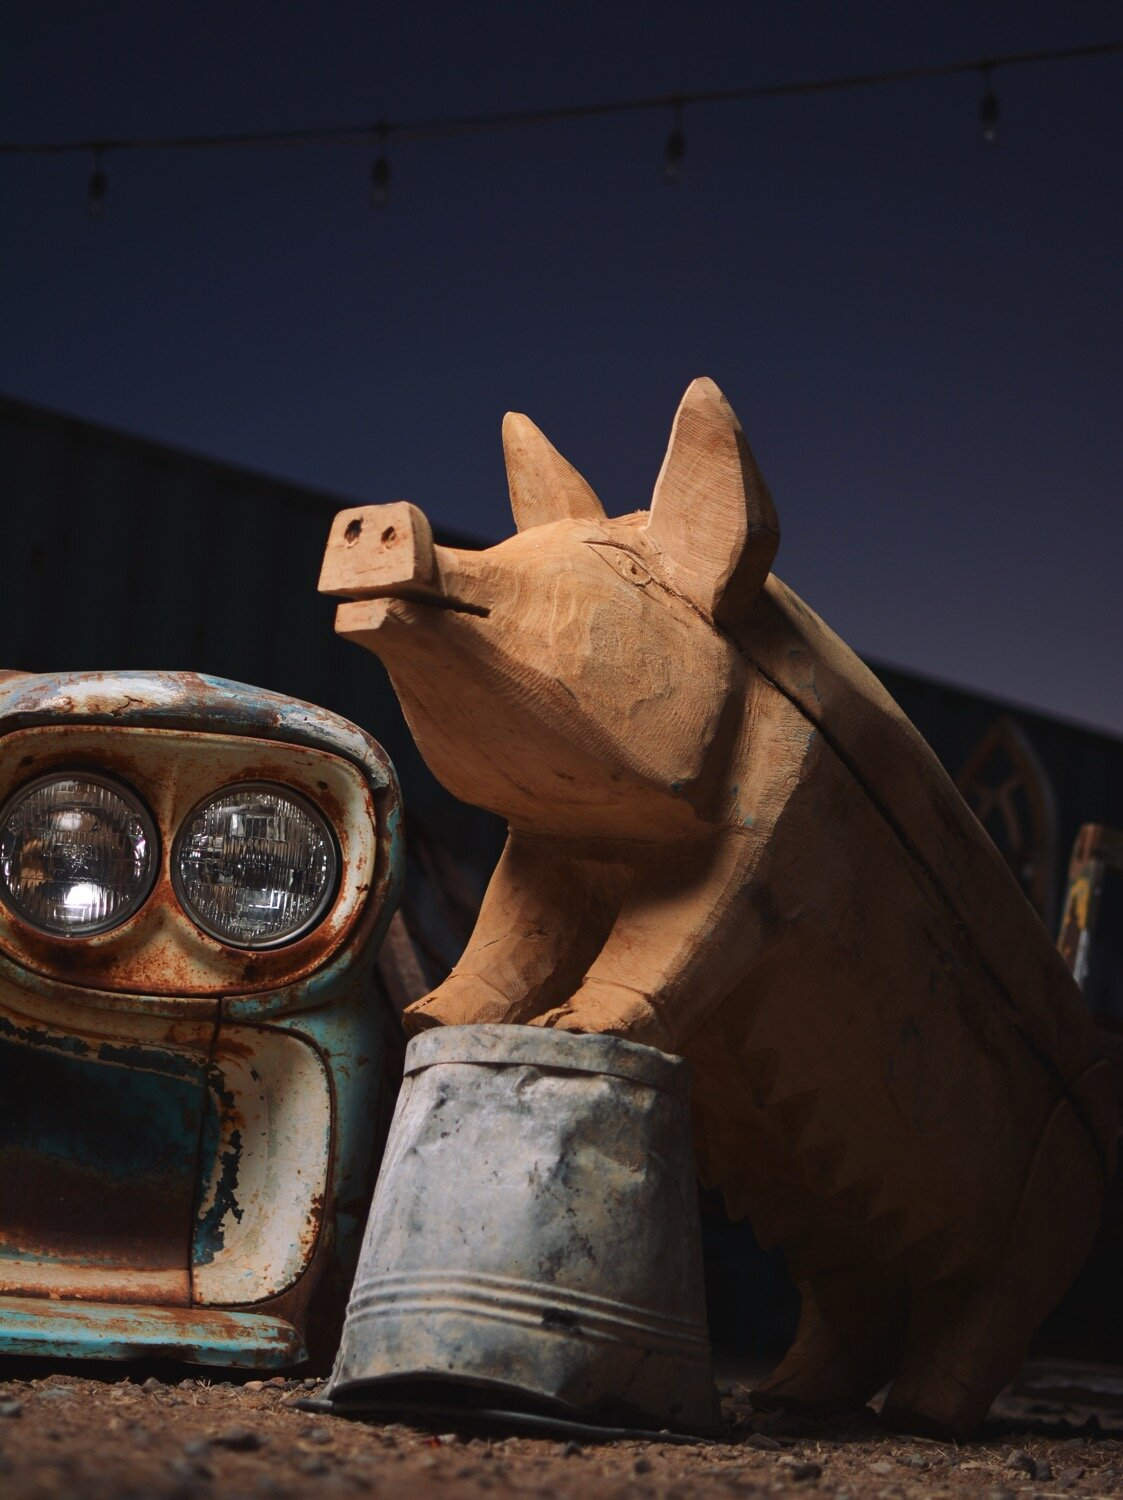 Rustic Hand Carved Wooden Pig